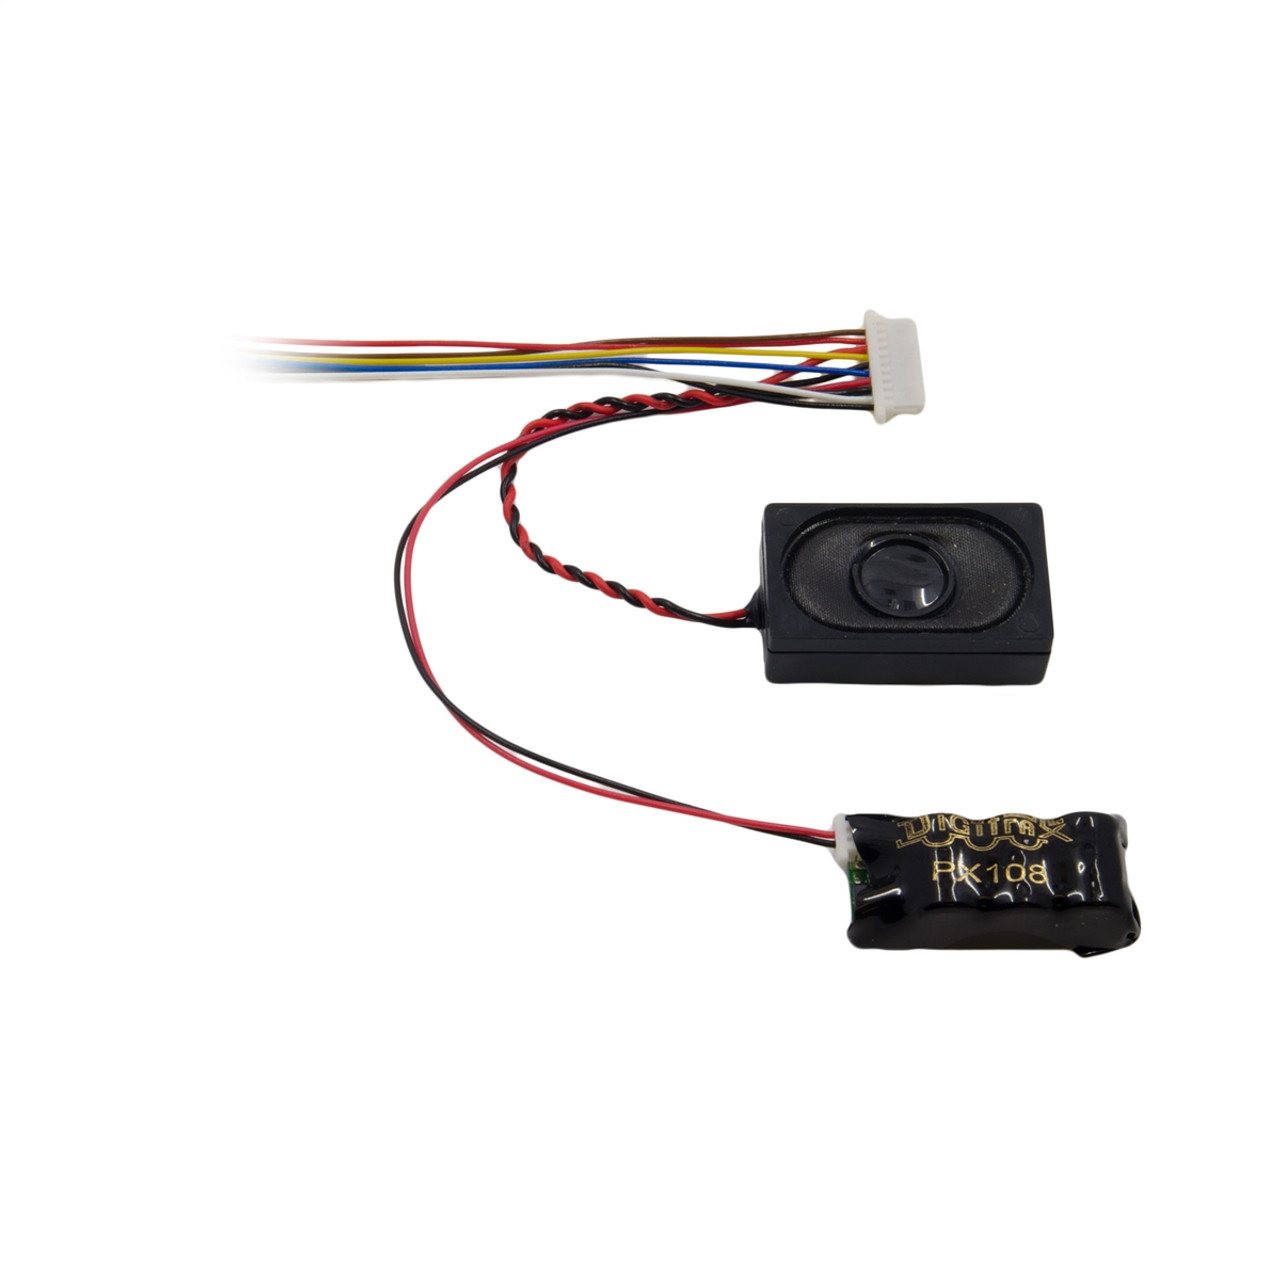 small resolution of digitrax px108 10 power xtender for use with digitrax decoders equipped with 10 pin sound harness modeltrainstuff com